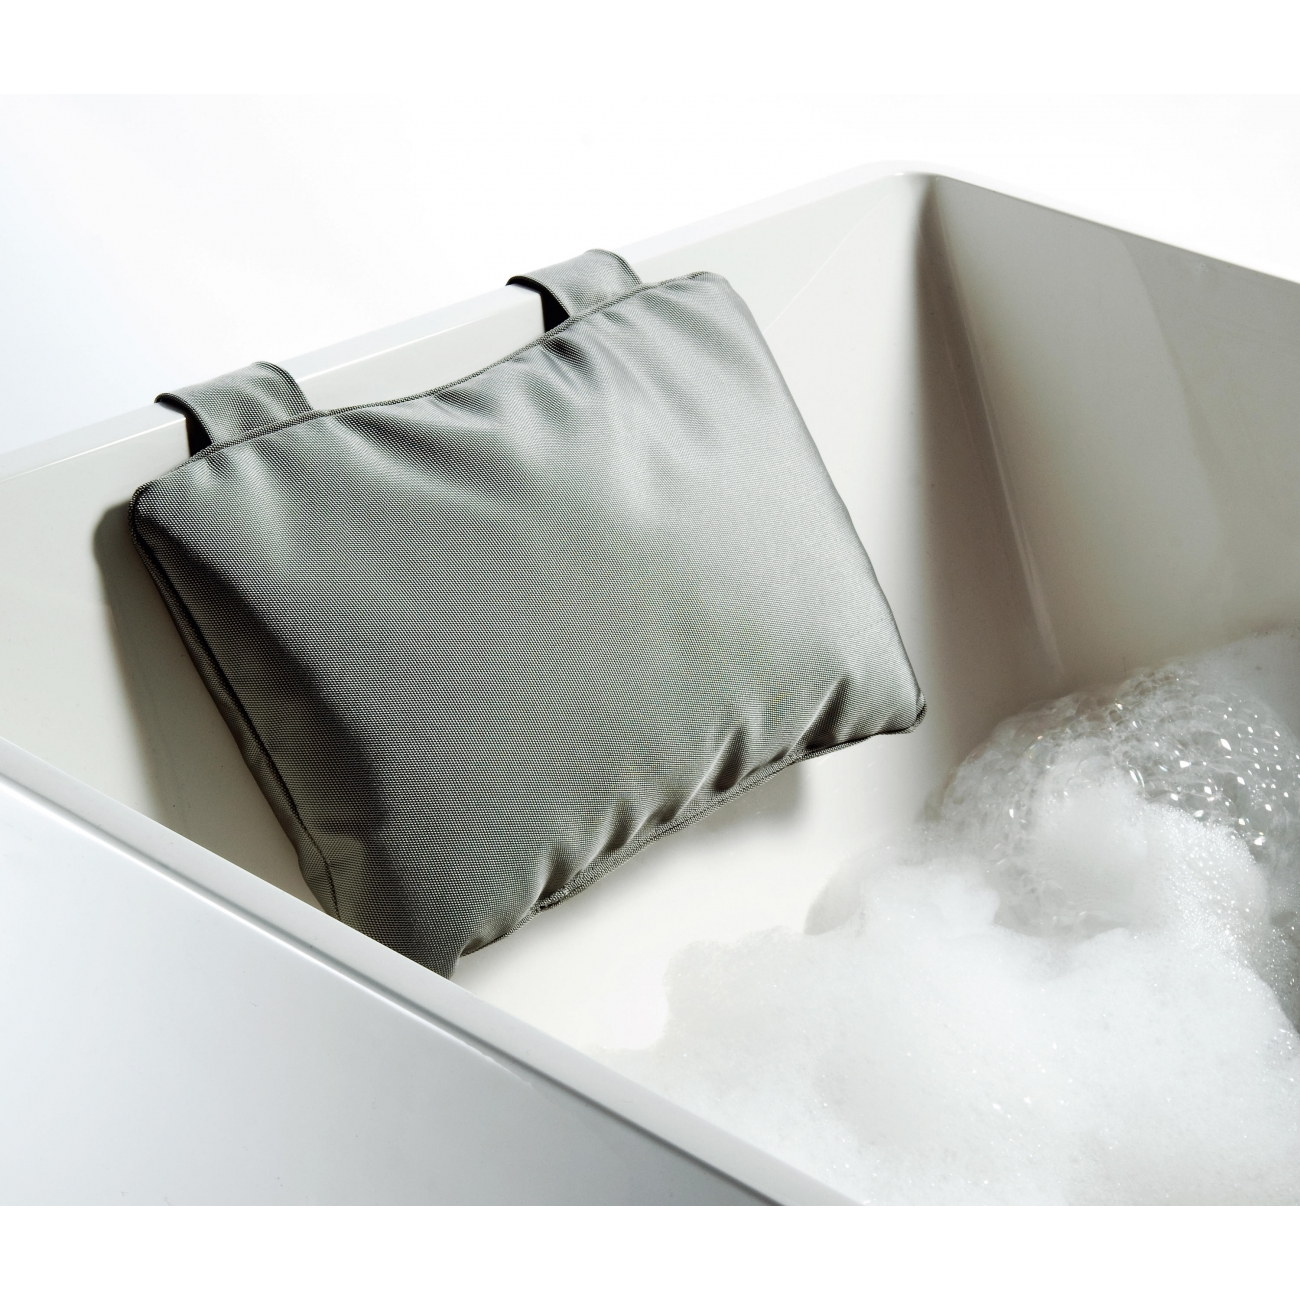 Decor Walther Decor Walther Loft Nk Bath Pillow Nylon Tattahome